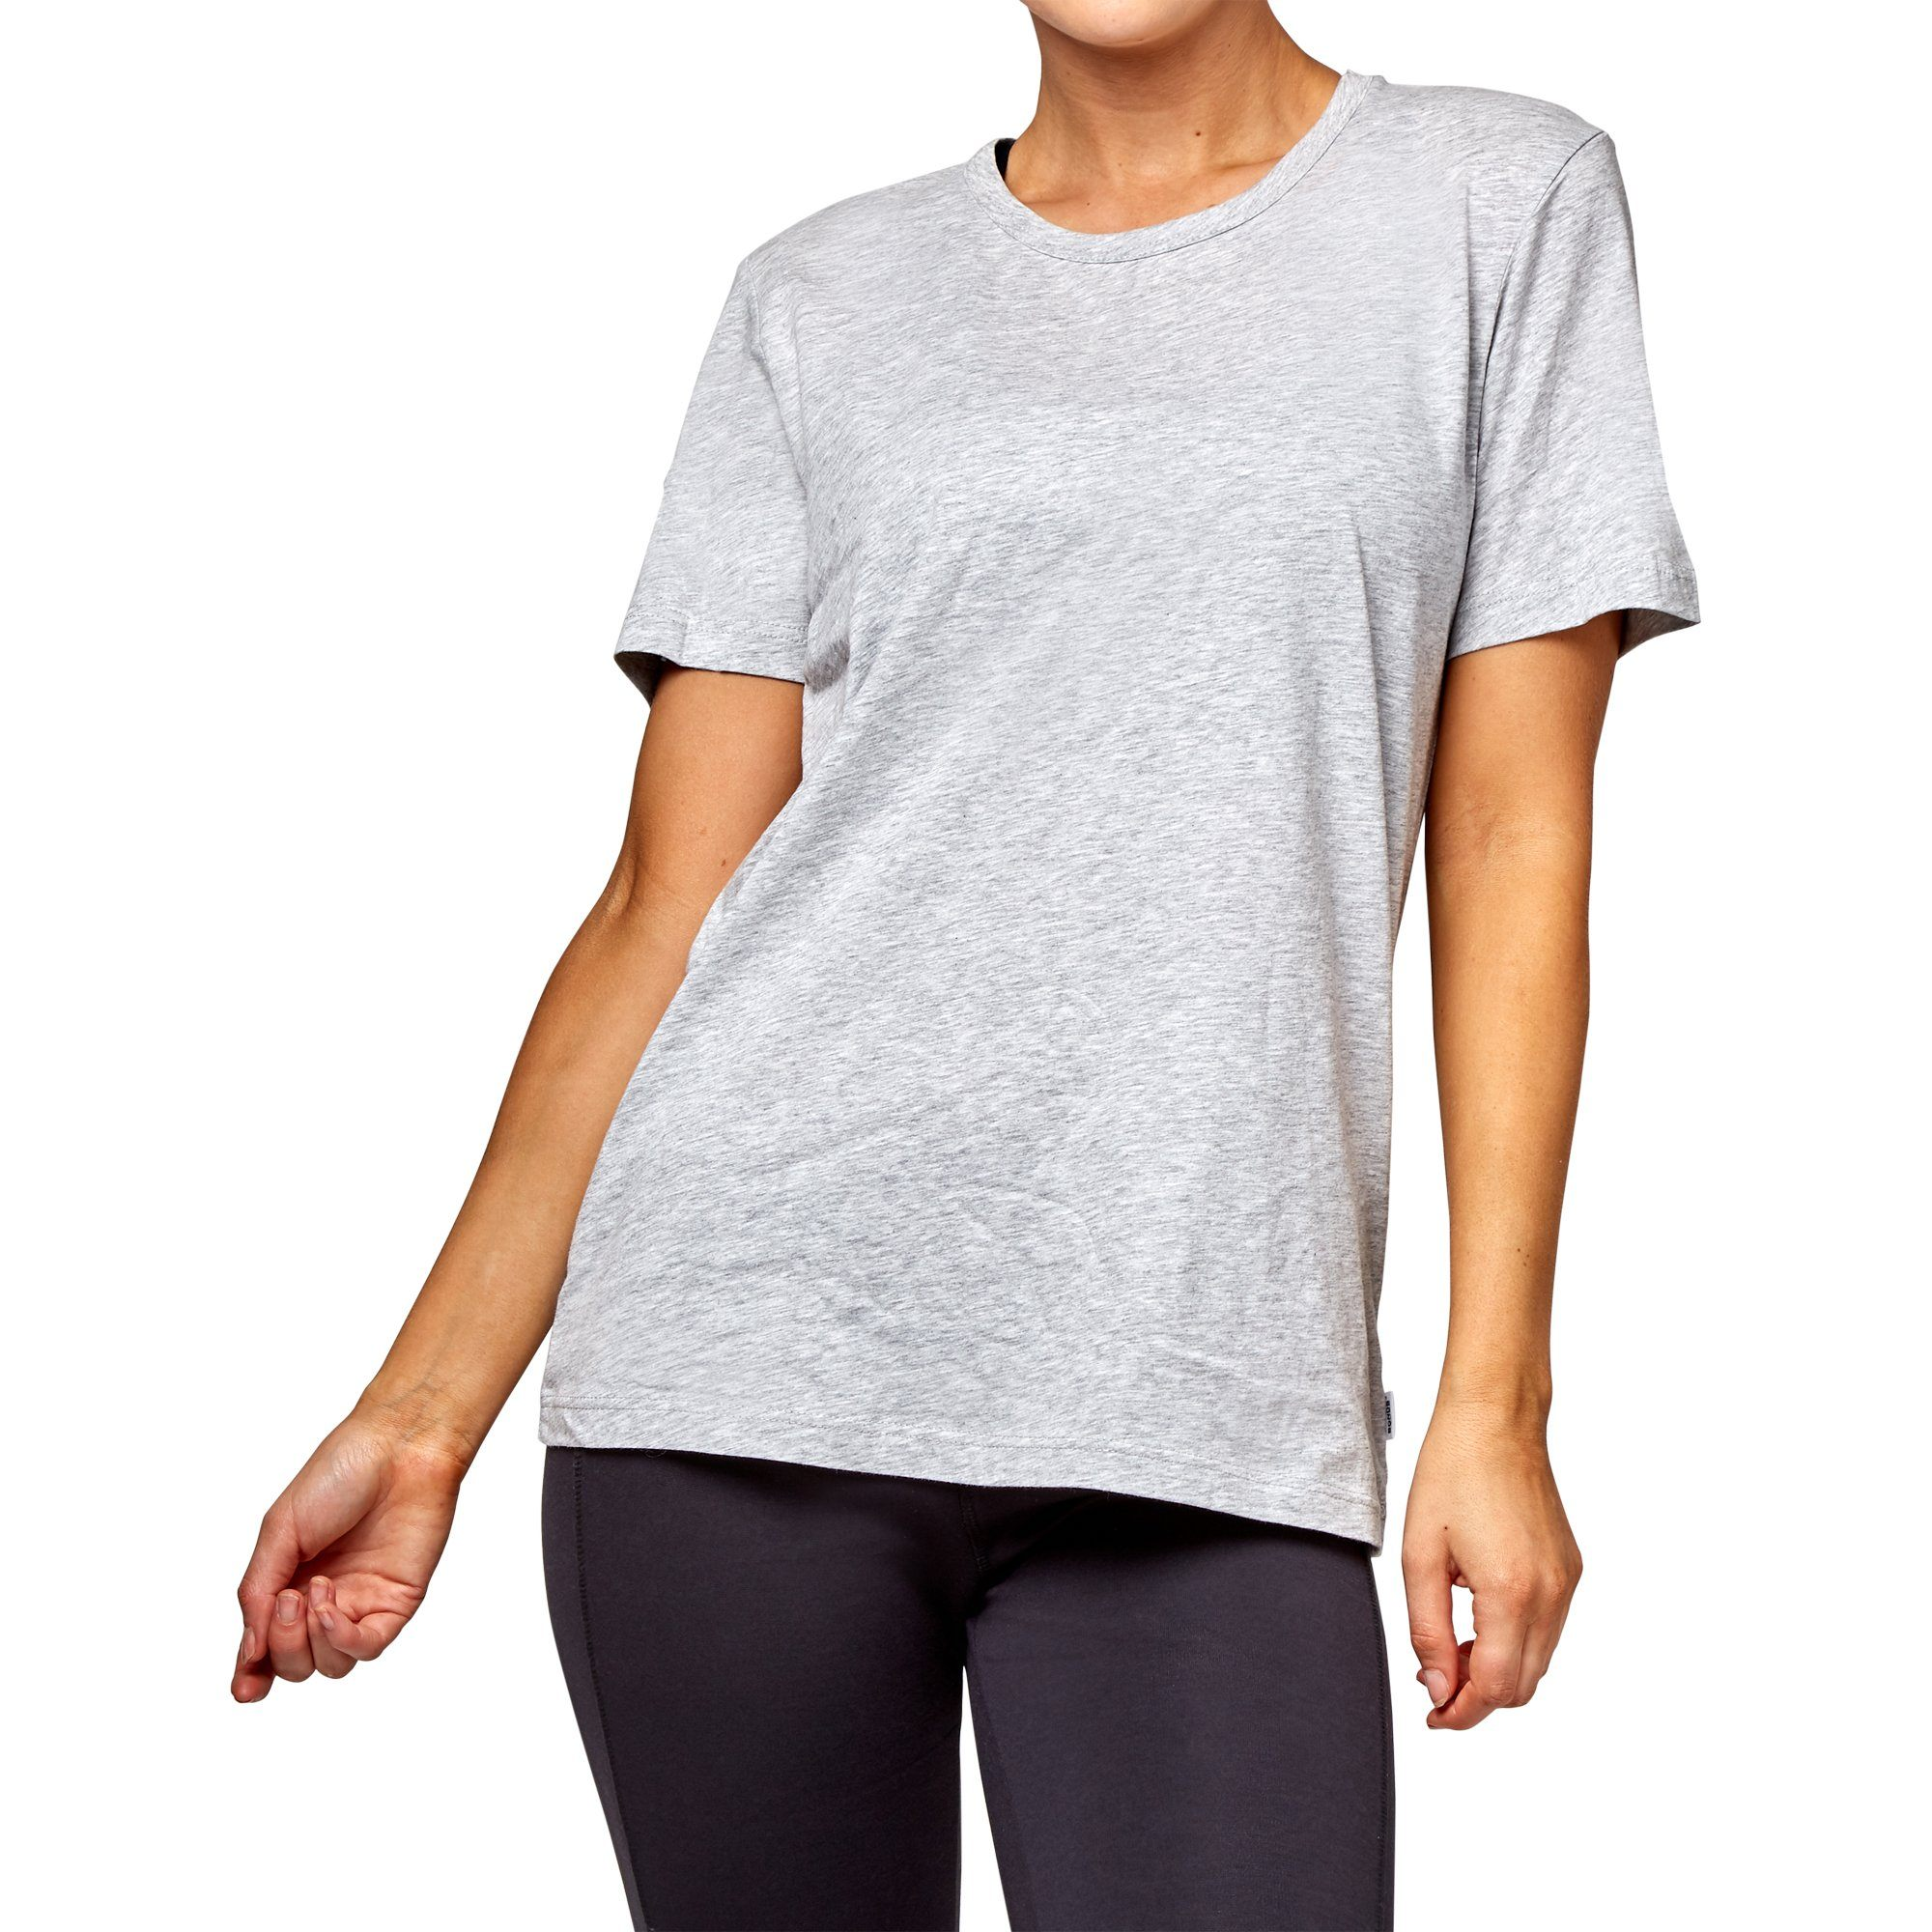 Bonds Women's Crew Tee LSJ - New Grey Marble Apparel Bonds  (2019304472635)